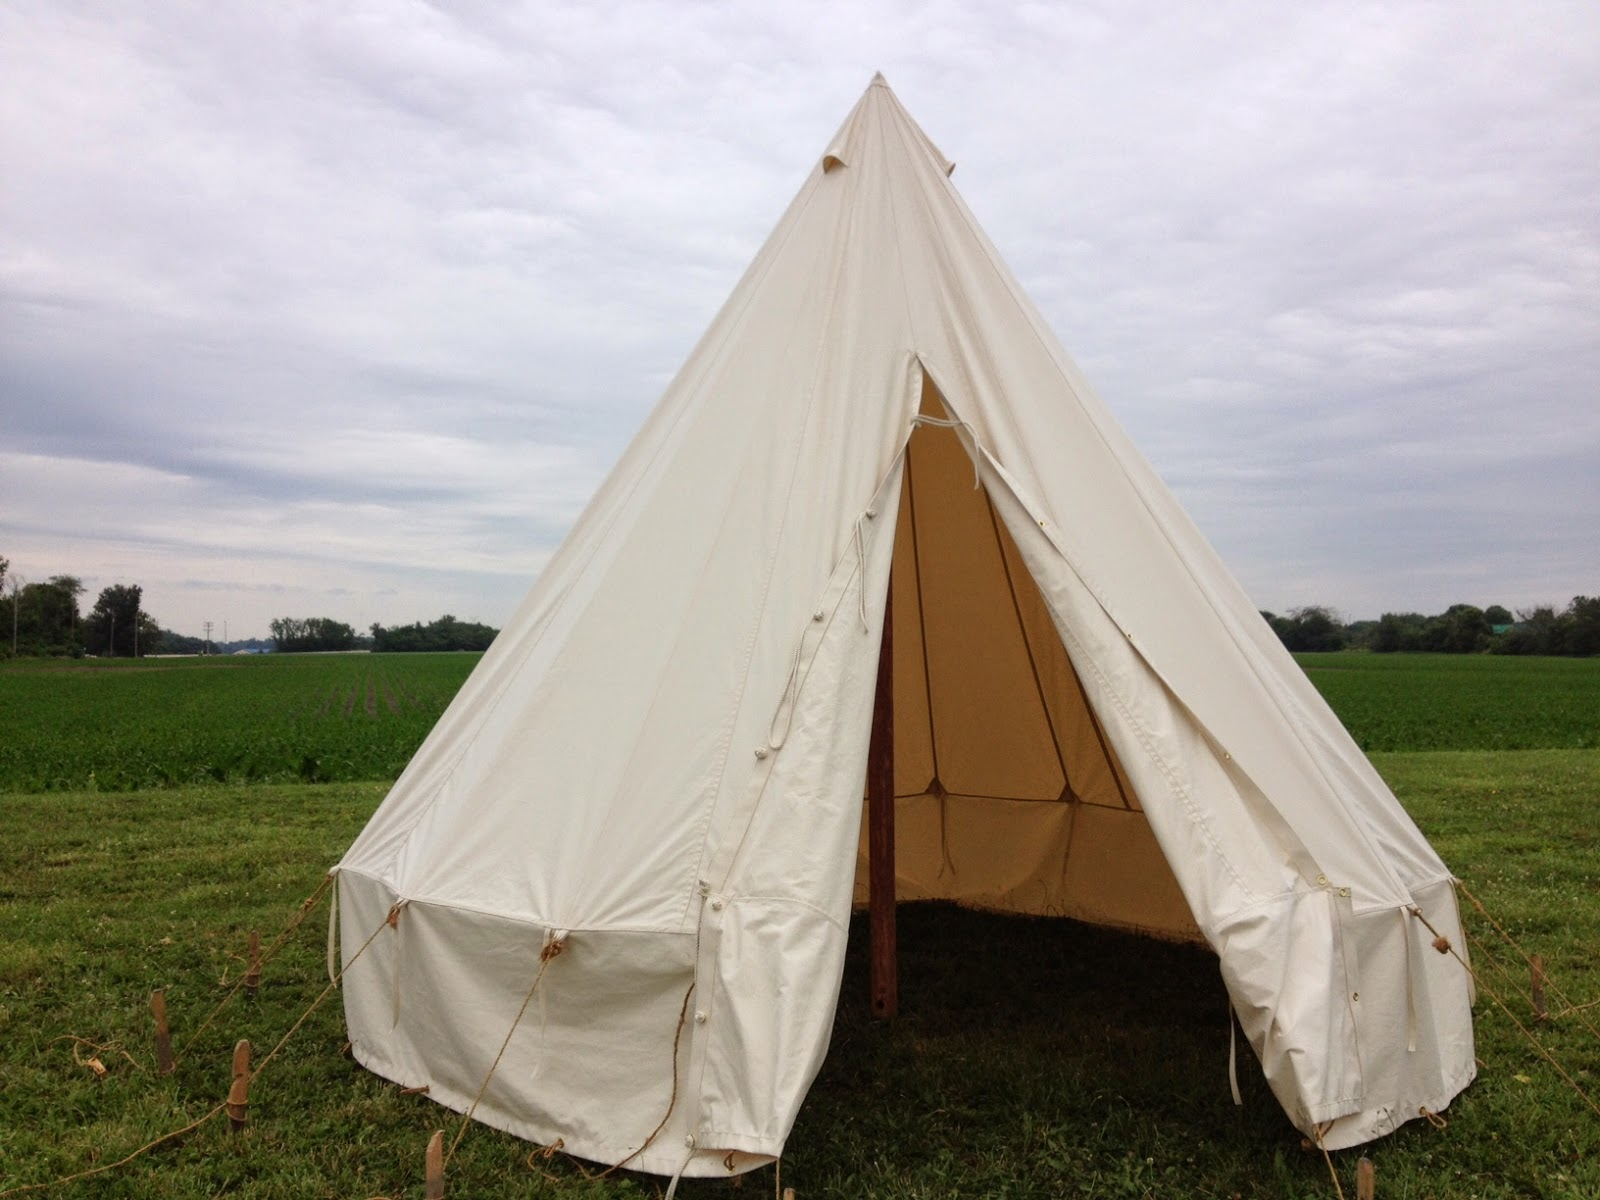 British Commonwealth Bell Tent u2013 $1300. Wooden Pole and stake kit; $275. Splicer for Center Pole $50 & Armbruster Manufacturing Co. | World War One Tent Pricing